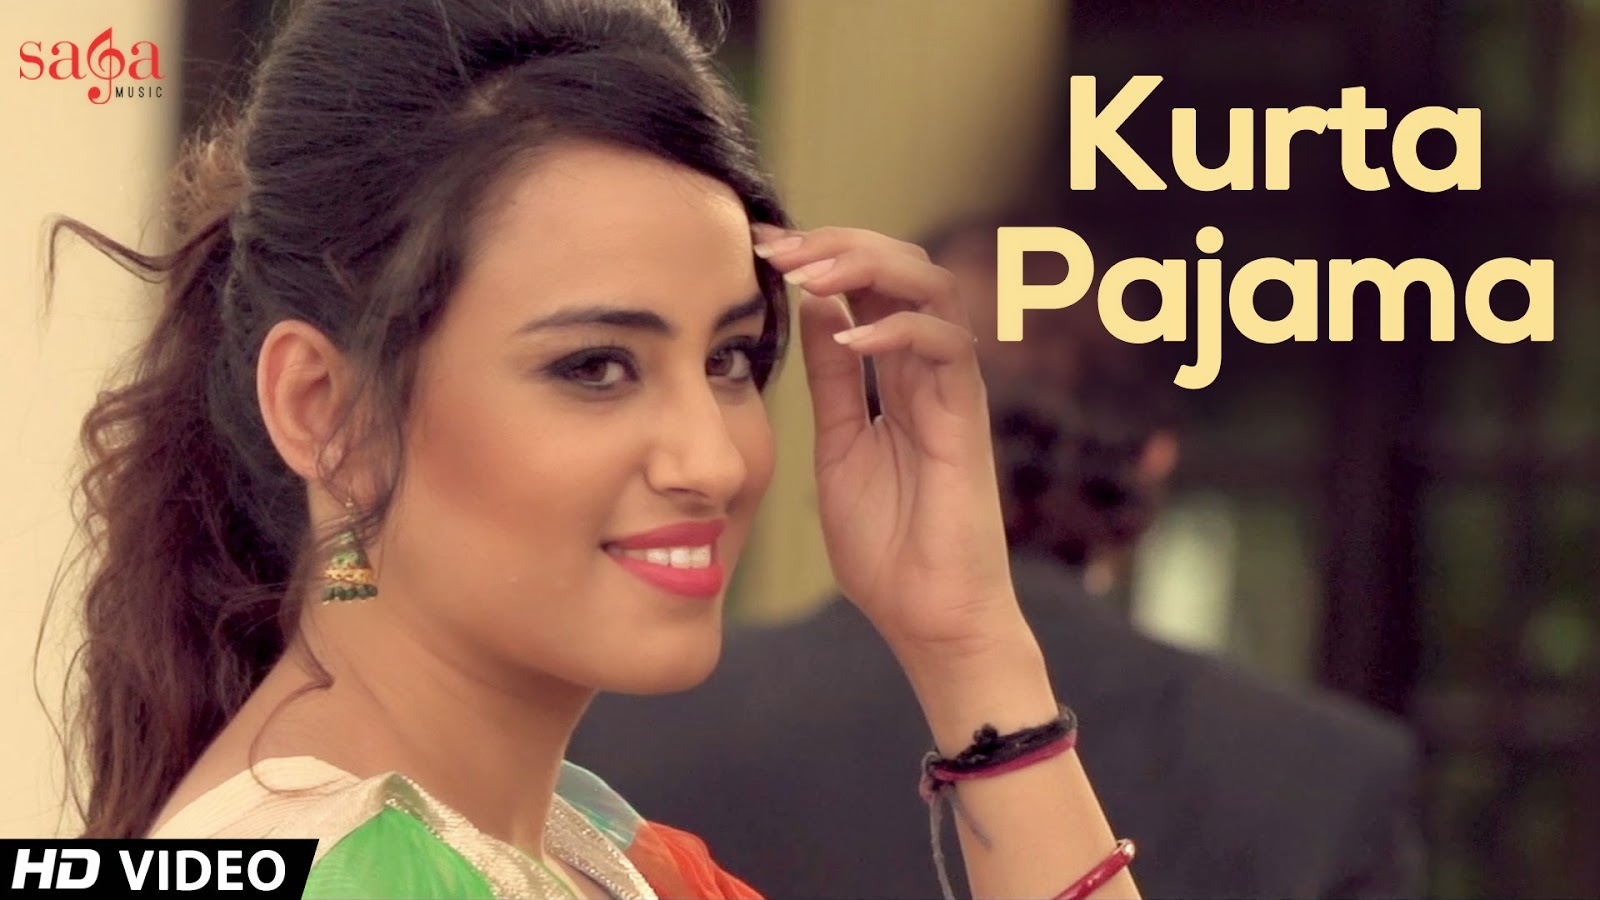 KURTA PAJAMA SONG LYRICS & VIDEO | GALAV WARAICH | NEW PUNJABI SONGS 2014